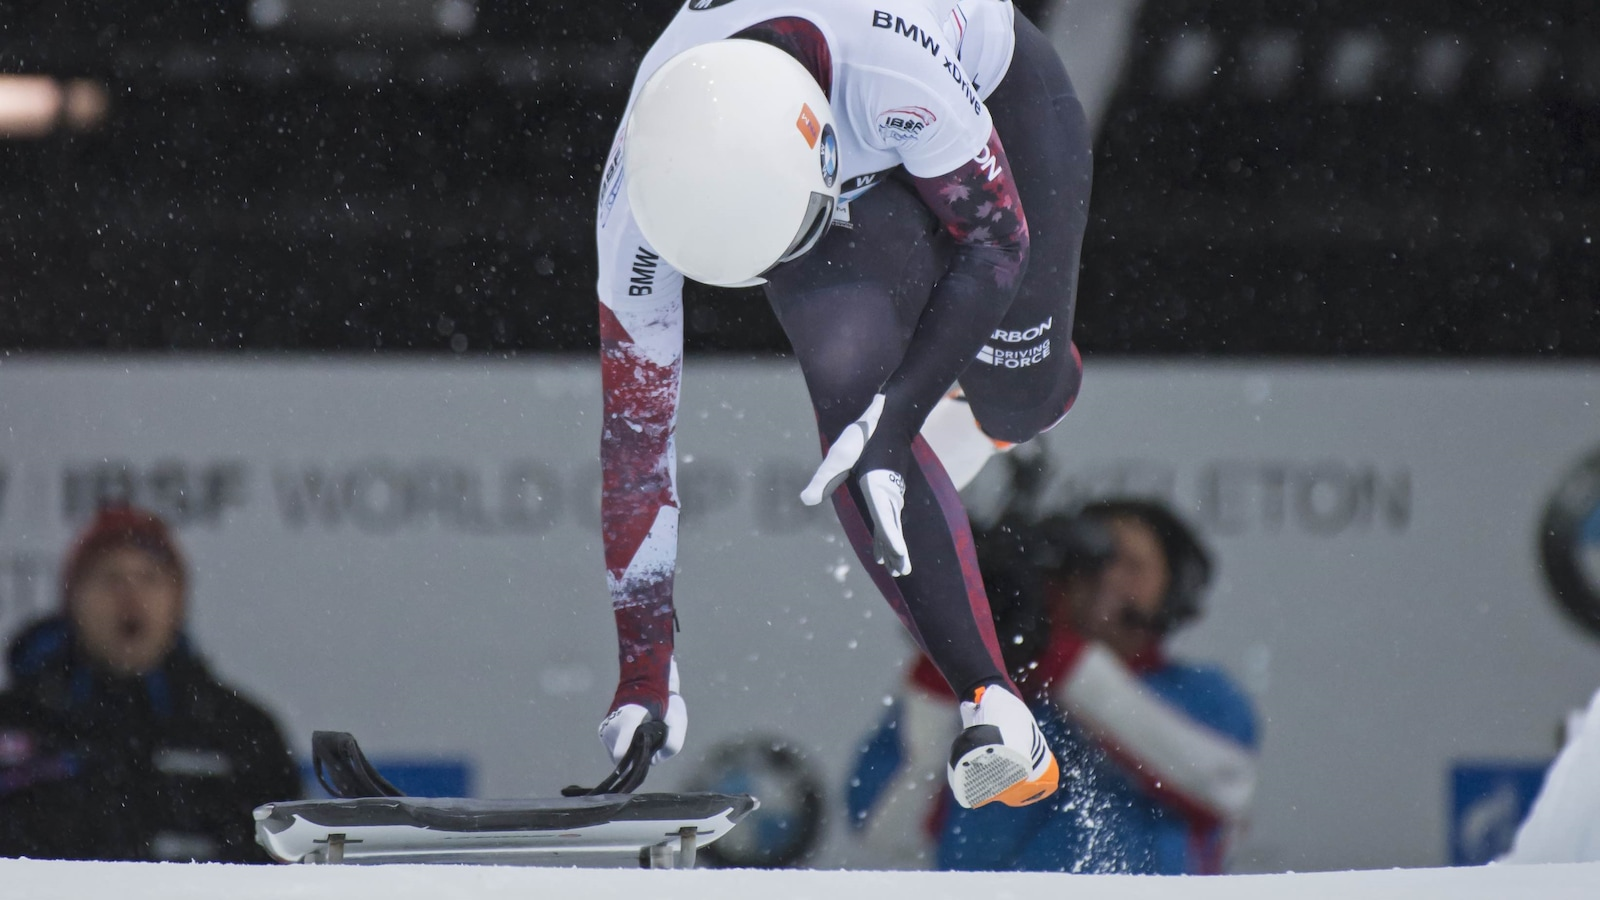 Mirela court avant de s'élancer en skeleton